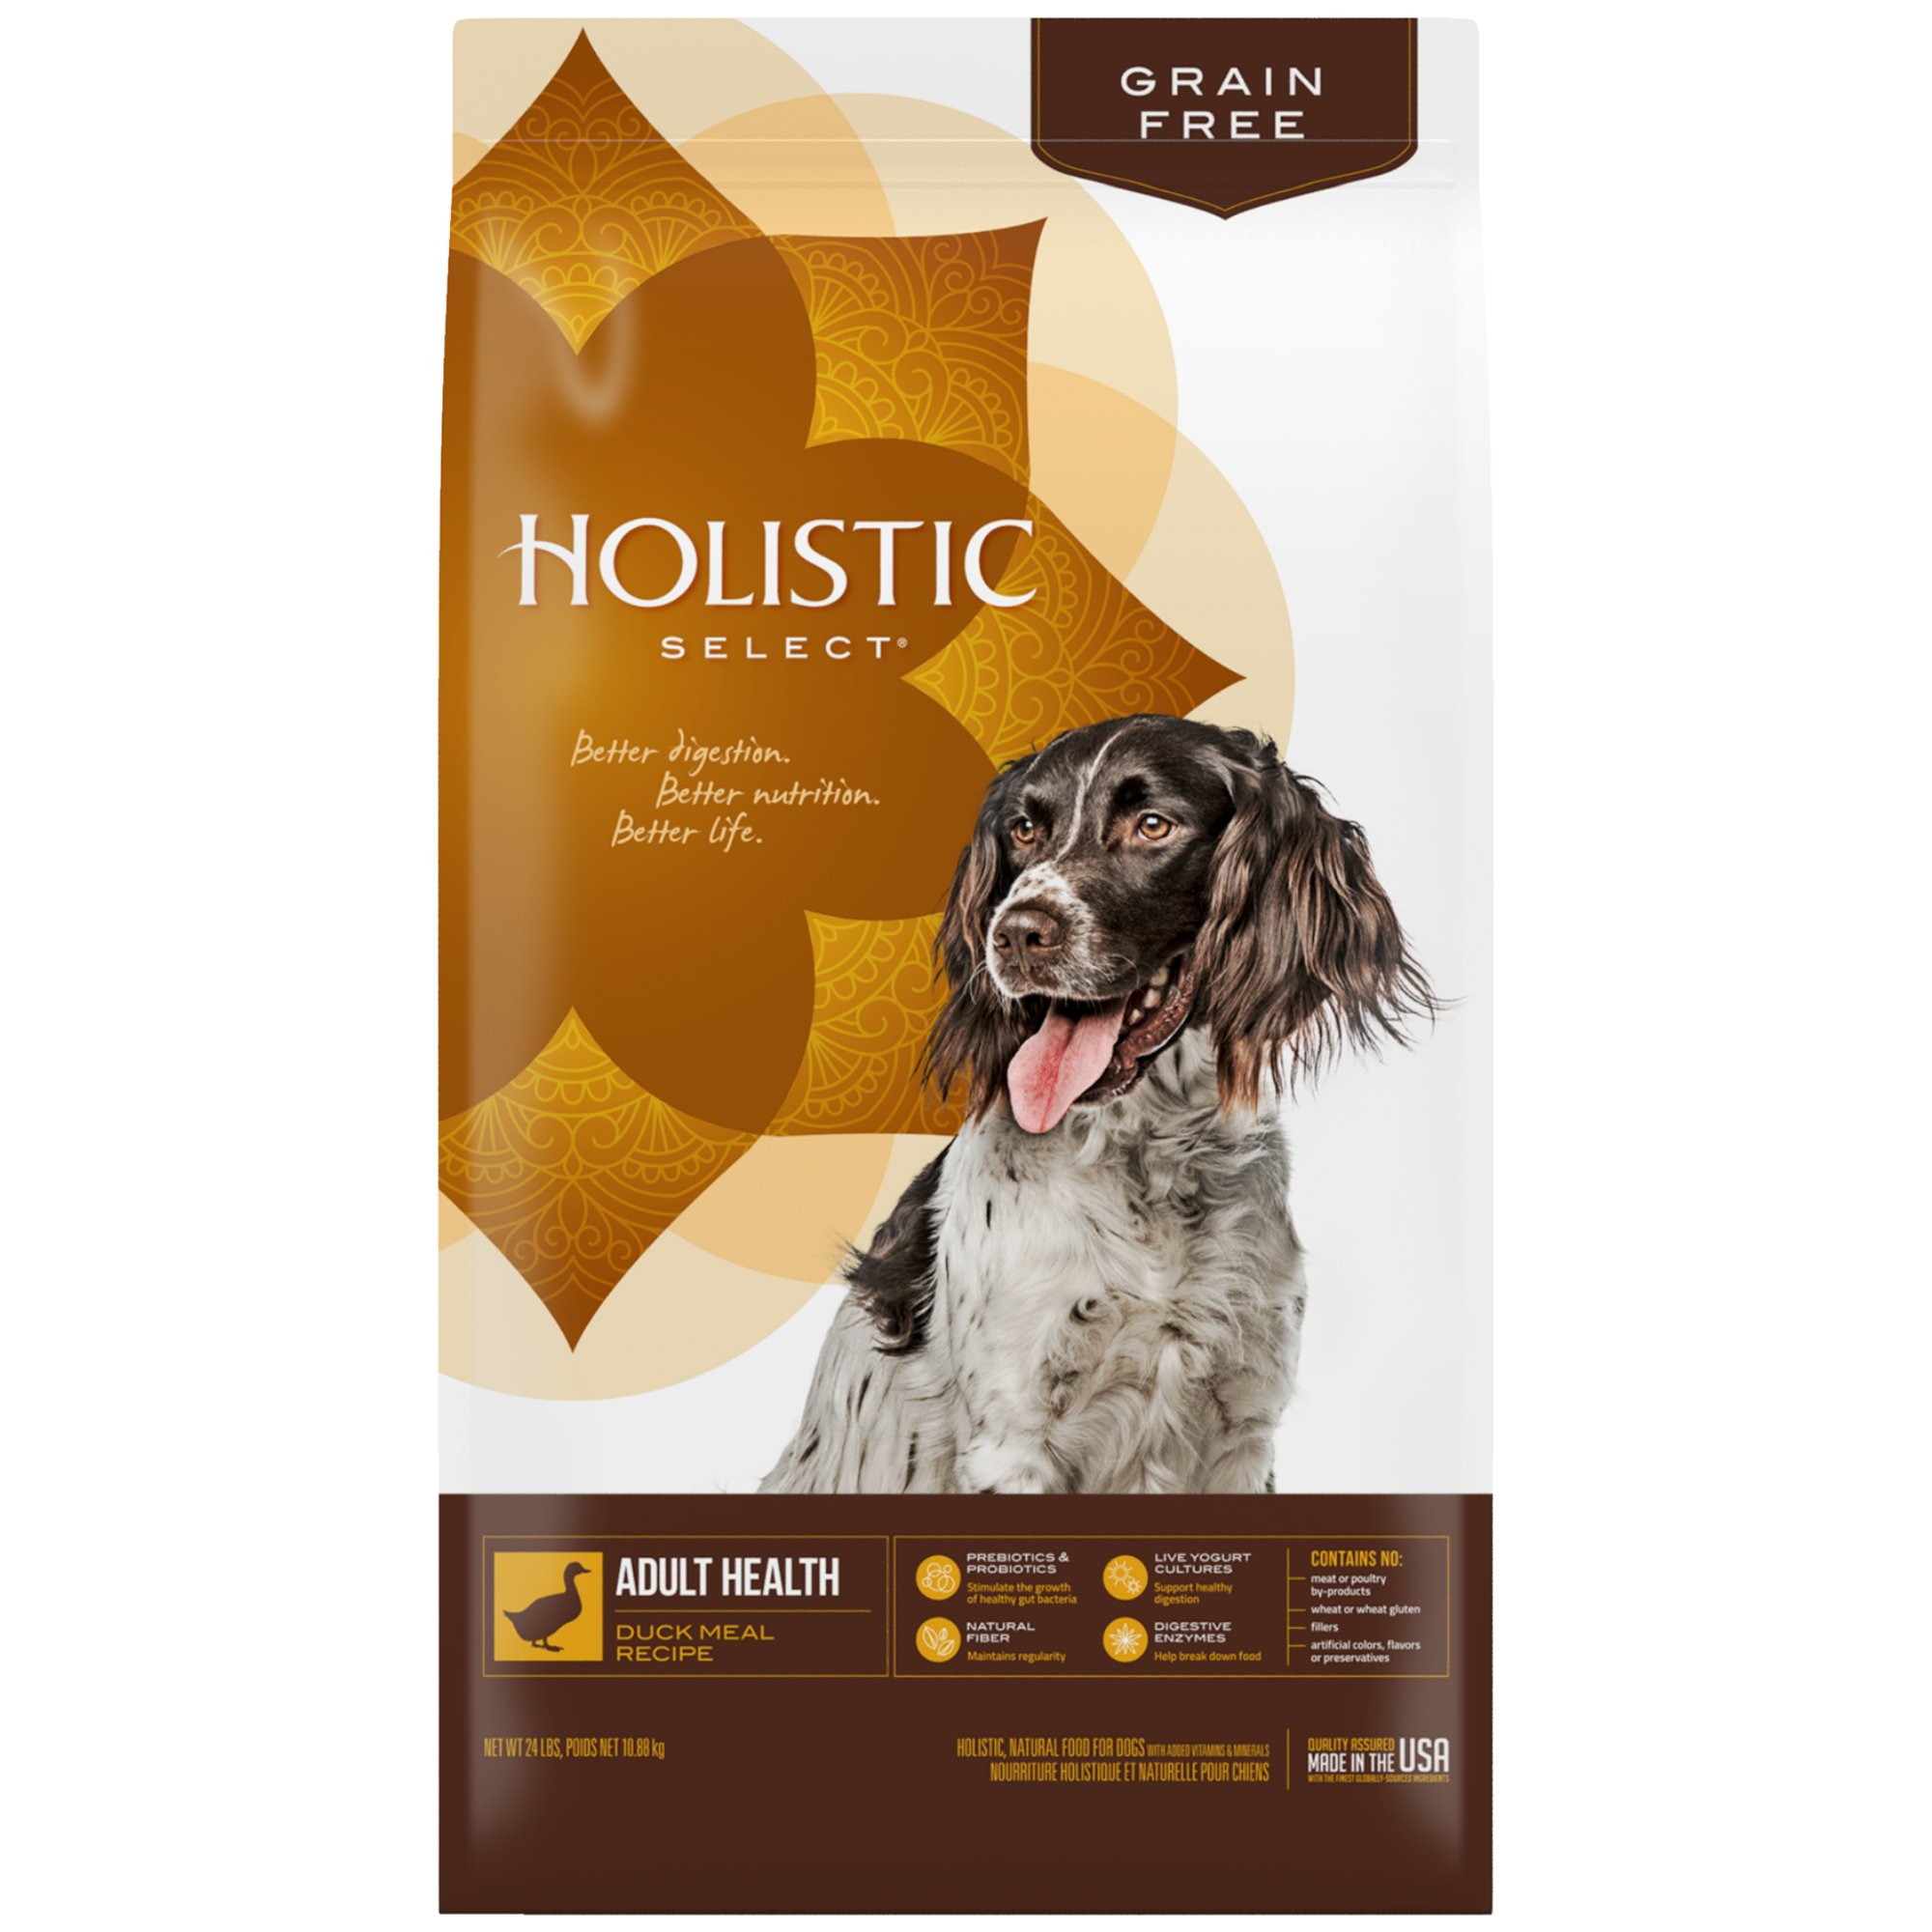 Holistic Select Natural Grain Free Dry Dog Food, Duck Meal Recipe, 24-Pound Bag by Holistic Select Natural Pet Food